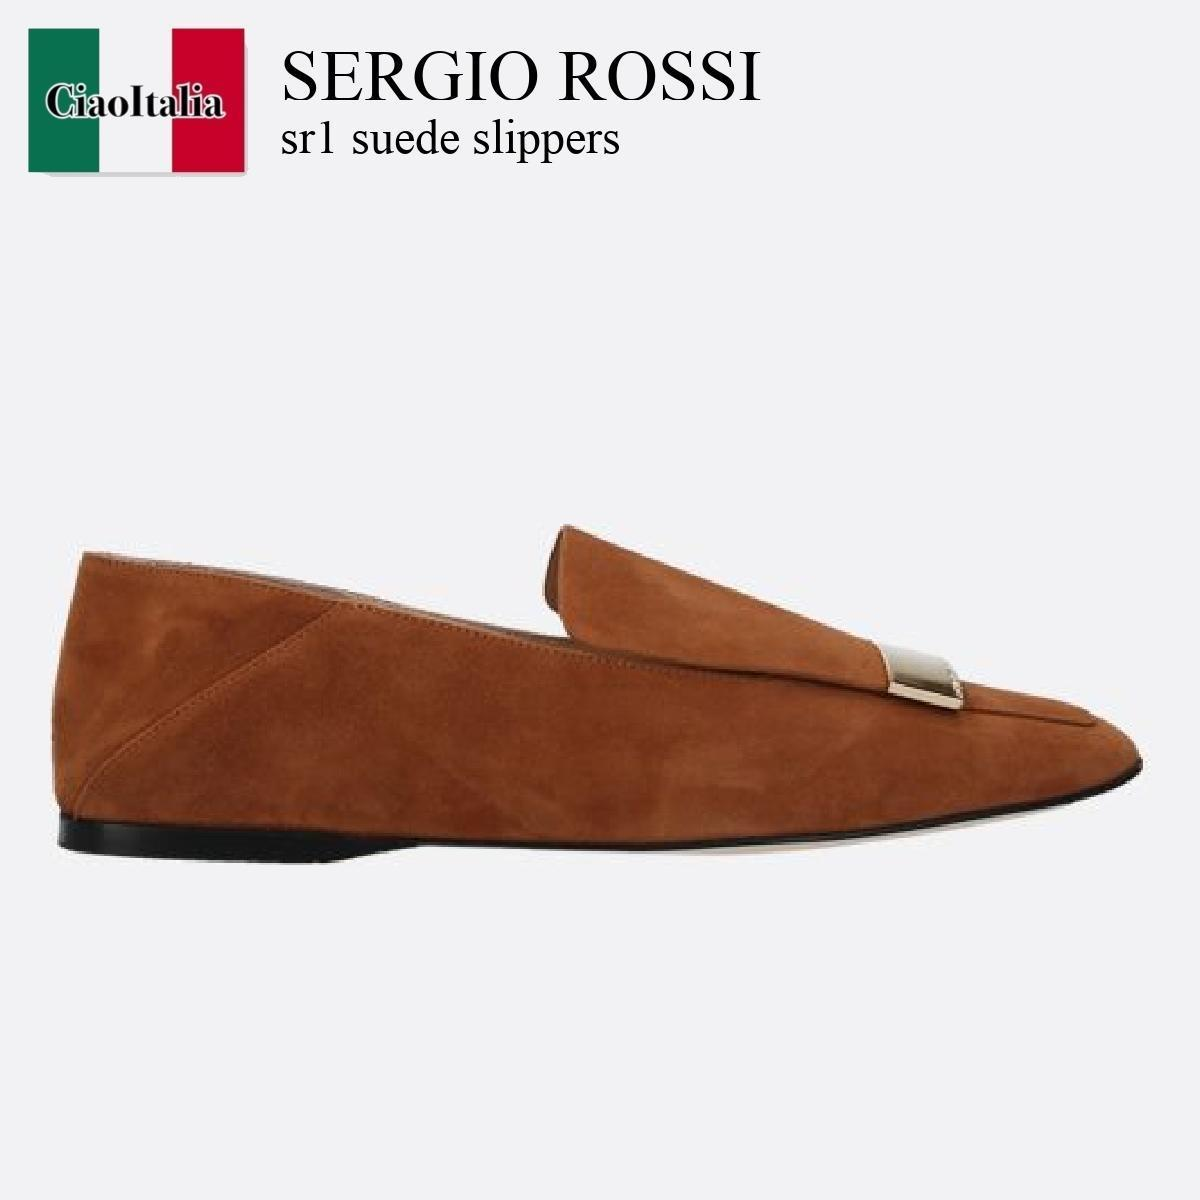 Sergio Rossi sr1 suede slippers (Sergio Rossi/フラットシューズ) SR1 SUEDE SLIPPERS  A77990MCAZ01  A77990MCAZ01 2236